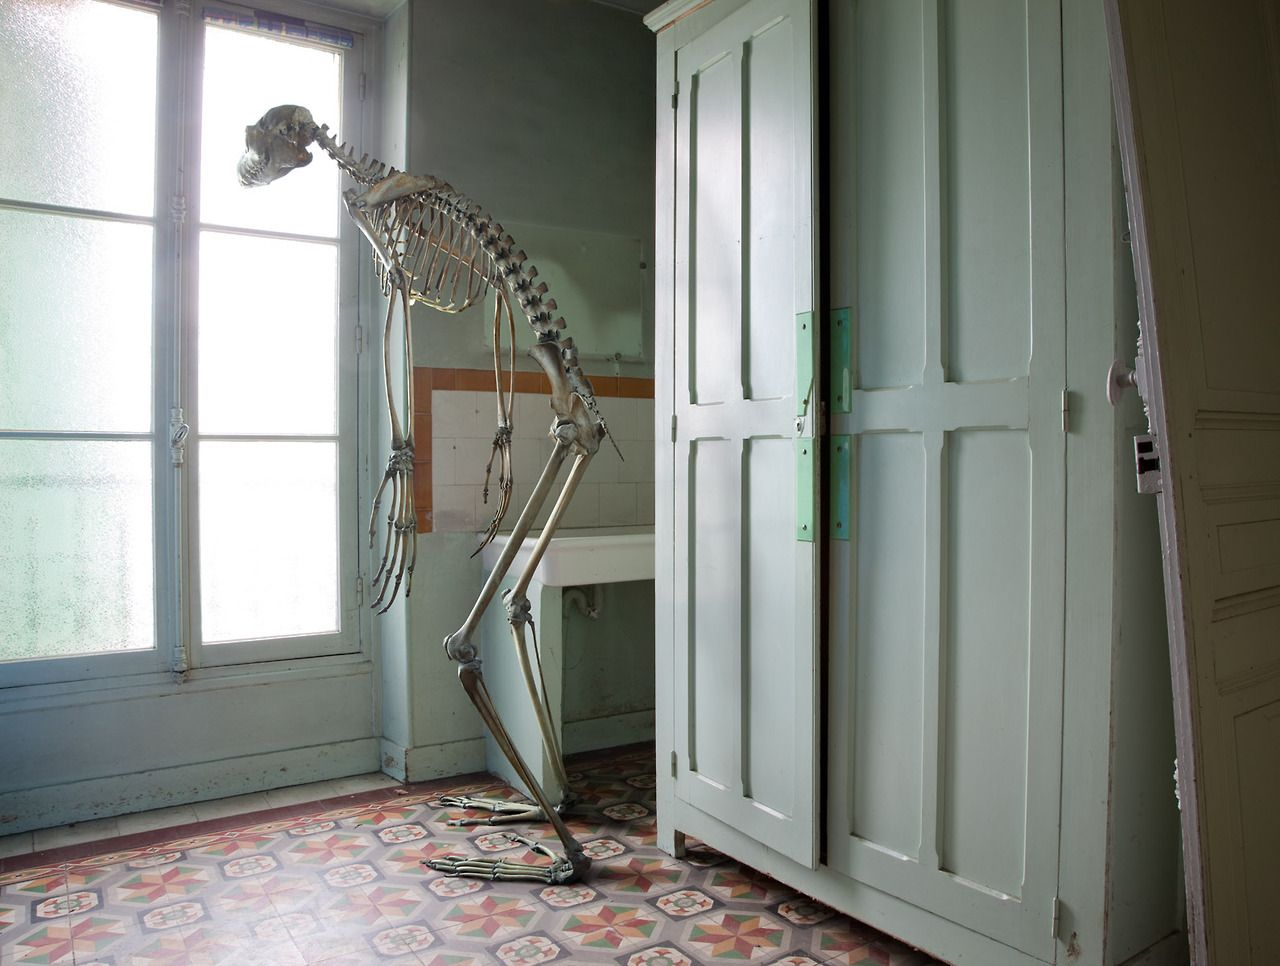 Marc Da Cunha Lopes photography #skeleton #surreal #surrealism #dinosaur #interiors #photography #photos #bones #everyday #archaeology